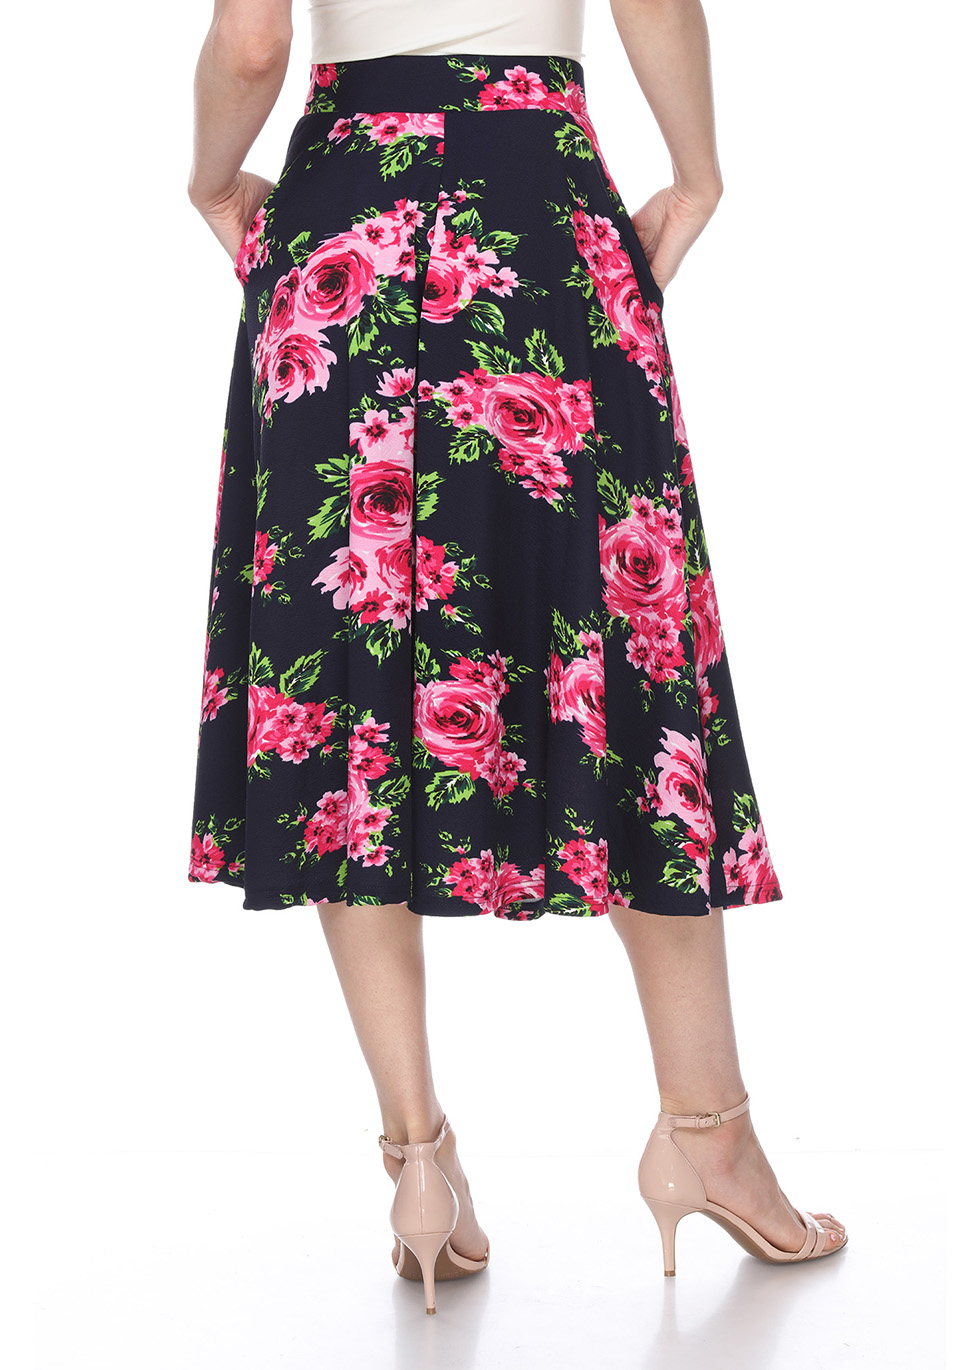 Flared Floral Midi Skirt with Pockets - Navy Flower